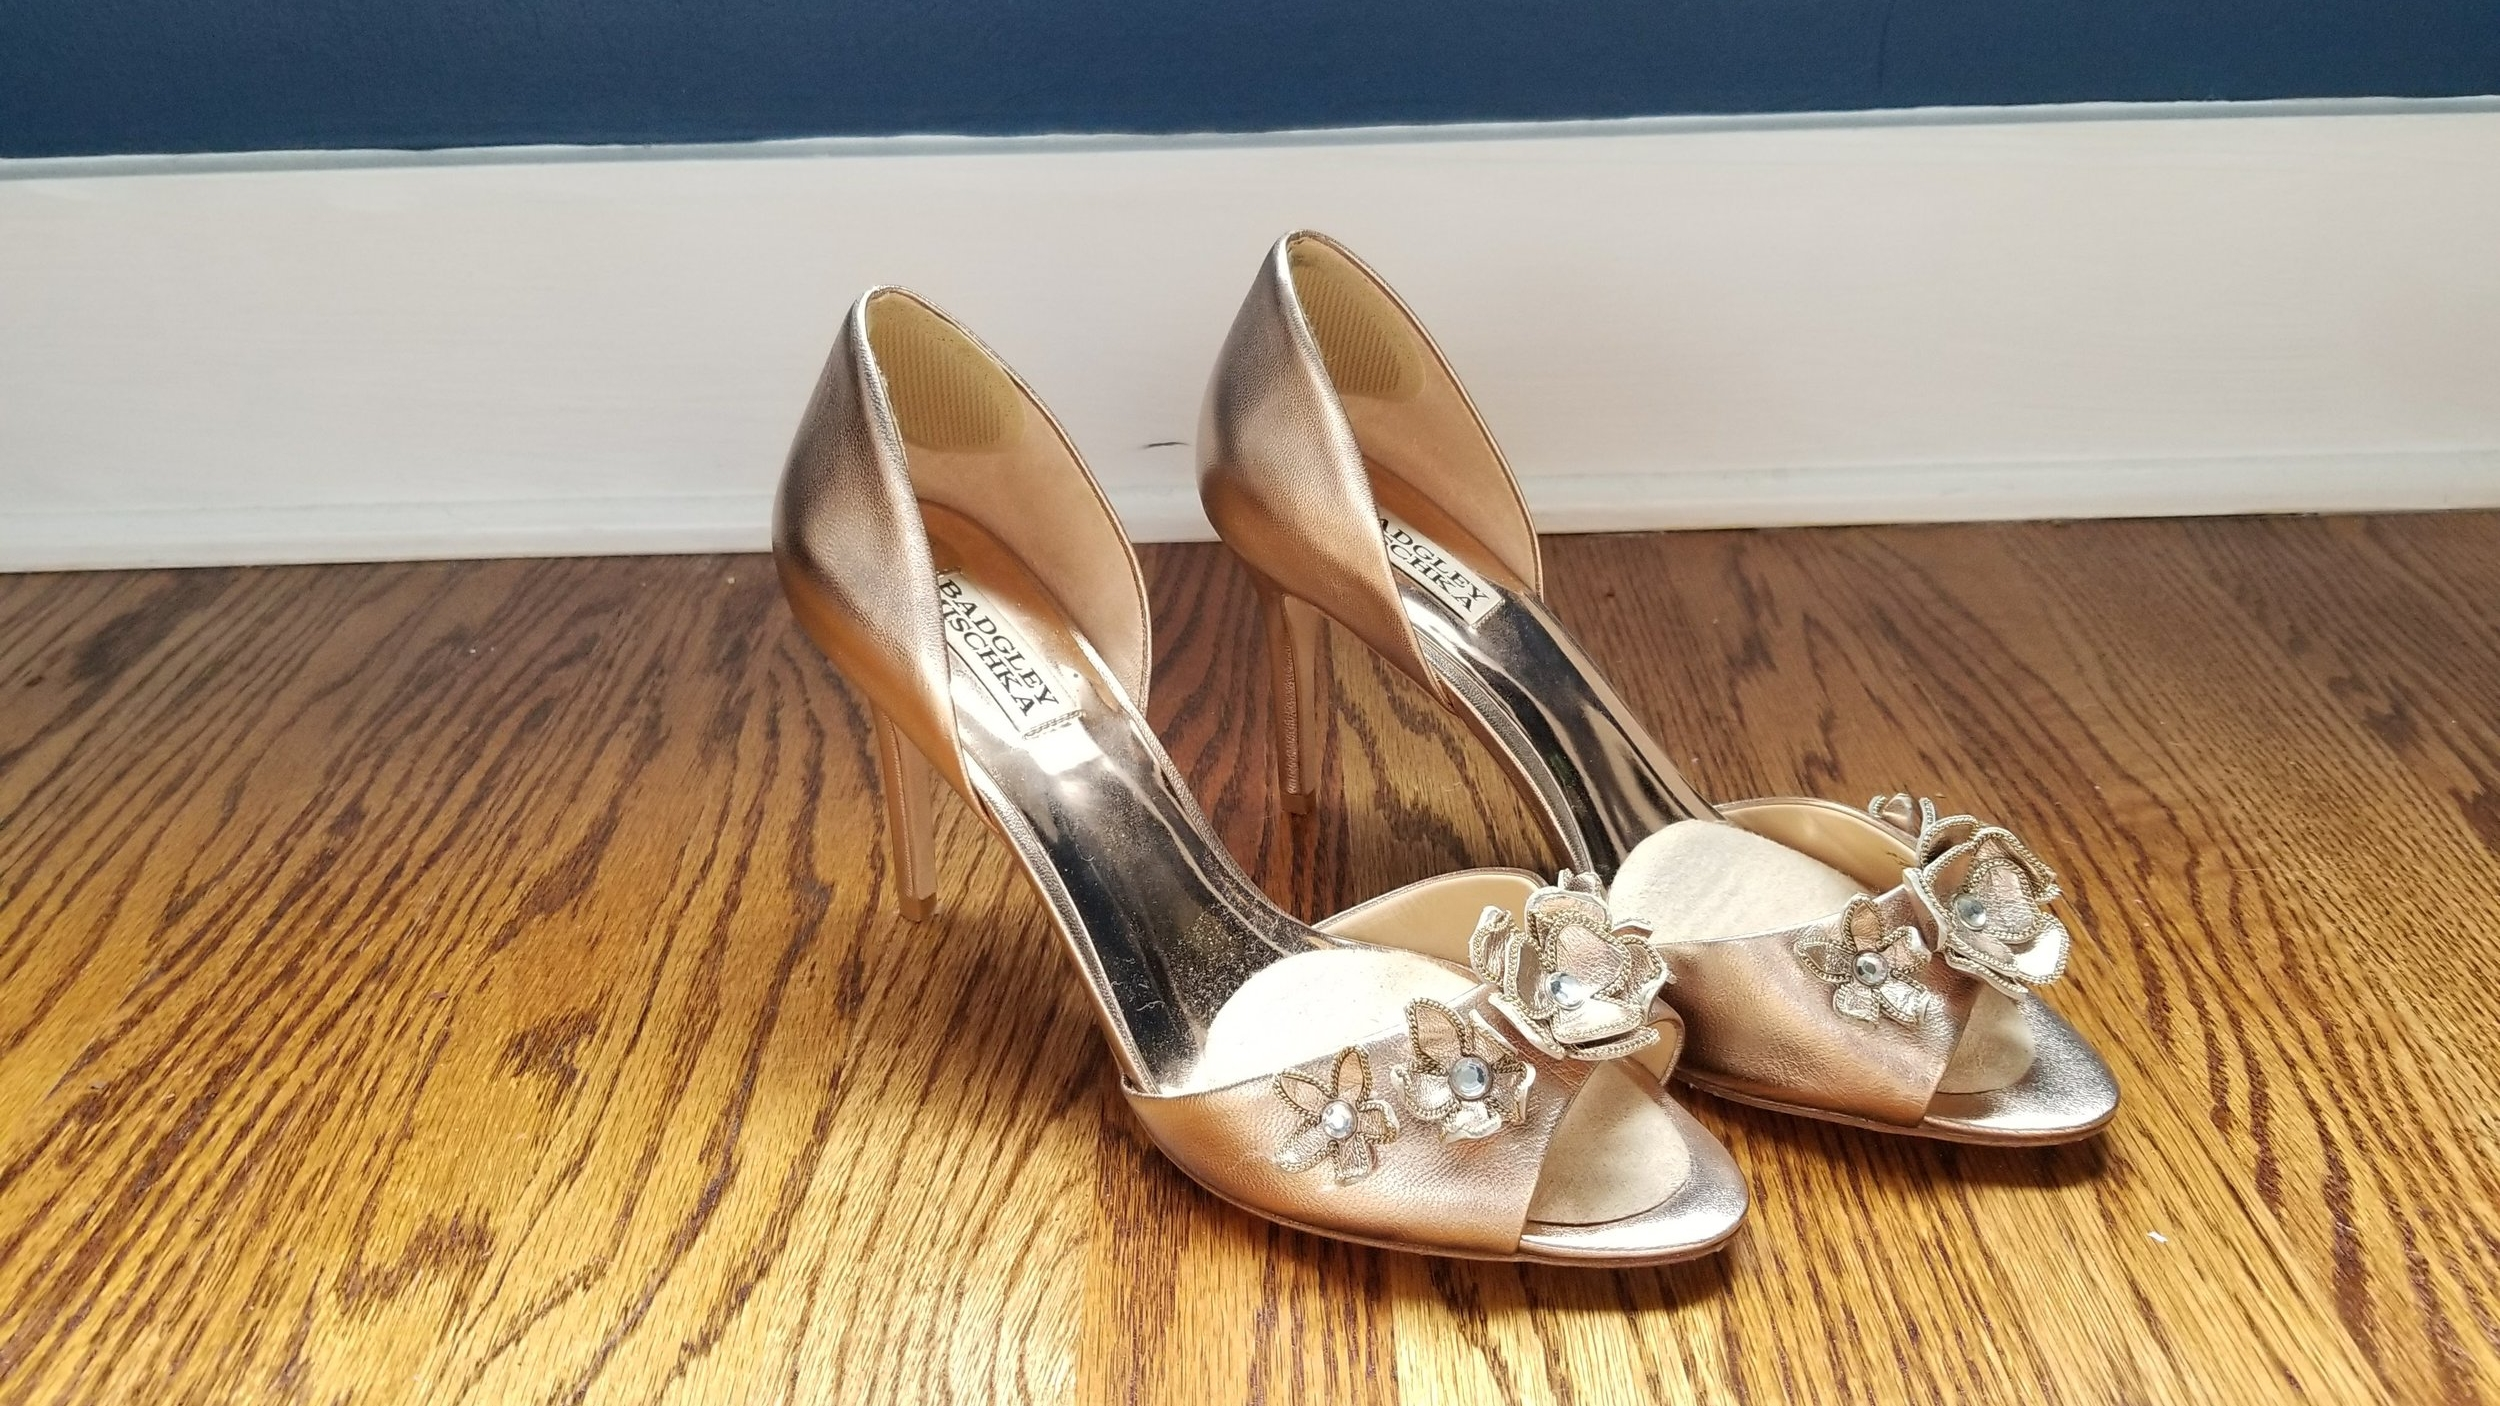 Ah yes, the wedding shoes. They are a work of art. But I imagine NO future where I have occasion to wear these again (Should I just invent one??). I knew that going in but couldn't resist how perfect they were with my dress.They live in a dustbag in my shoe care drawer. Would you keep them? Or sell? Honestly if they had a block heel I might wear them again. Do you think it's worth seeing if my cobbler can make a switch? Probably not worth it.